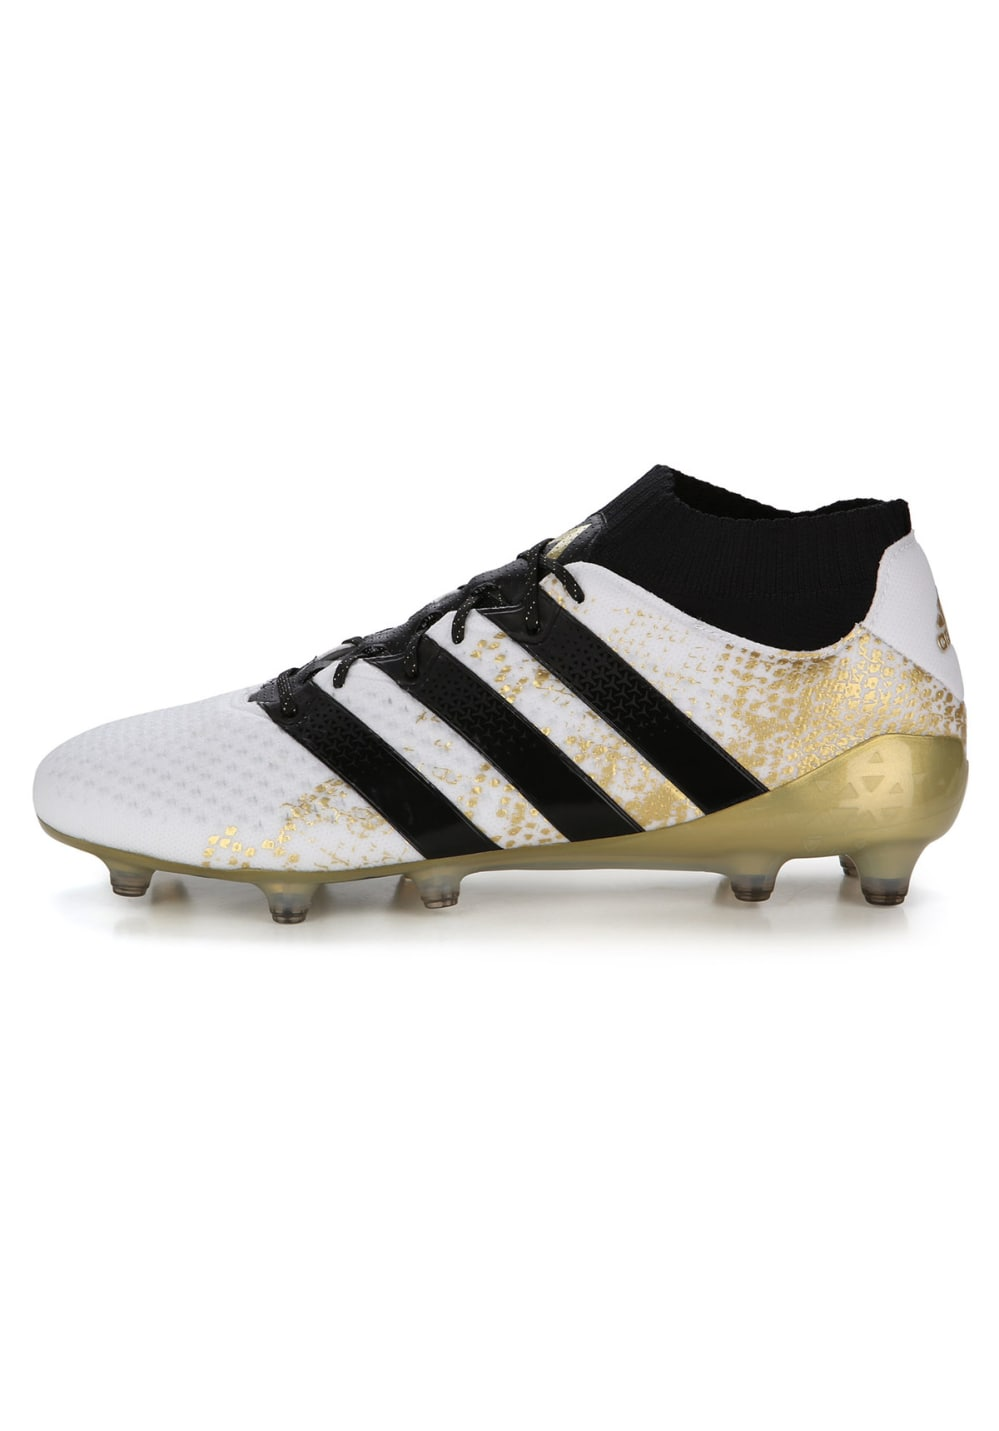 cheap for discount e7ba9 eff82 ... adidas ACE 16.1 Primeknit FG - Football Shoes for Men - White. Back to  Overview. 1 2 3 4 5. Previous. Next